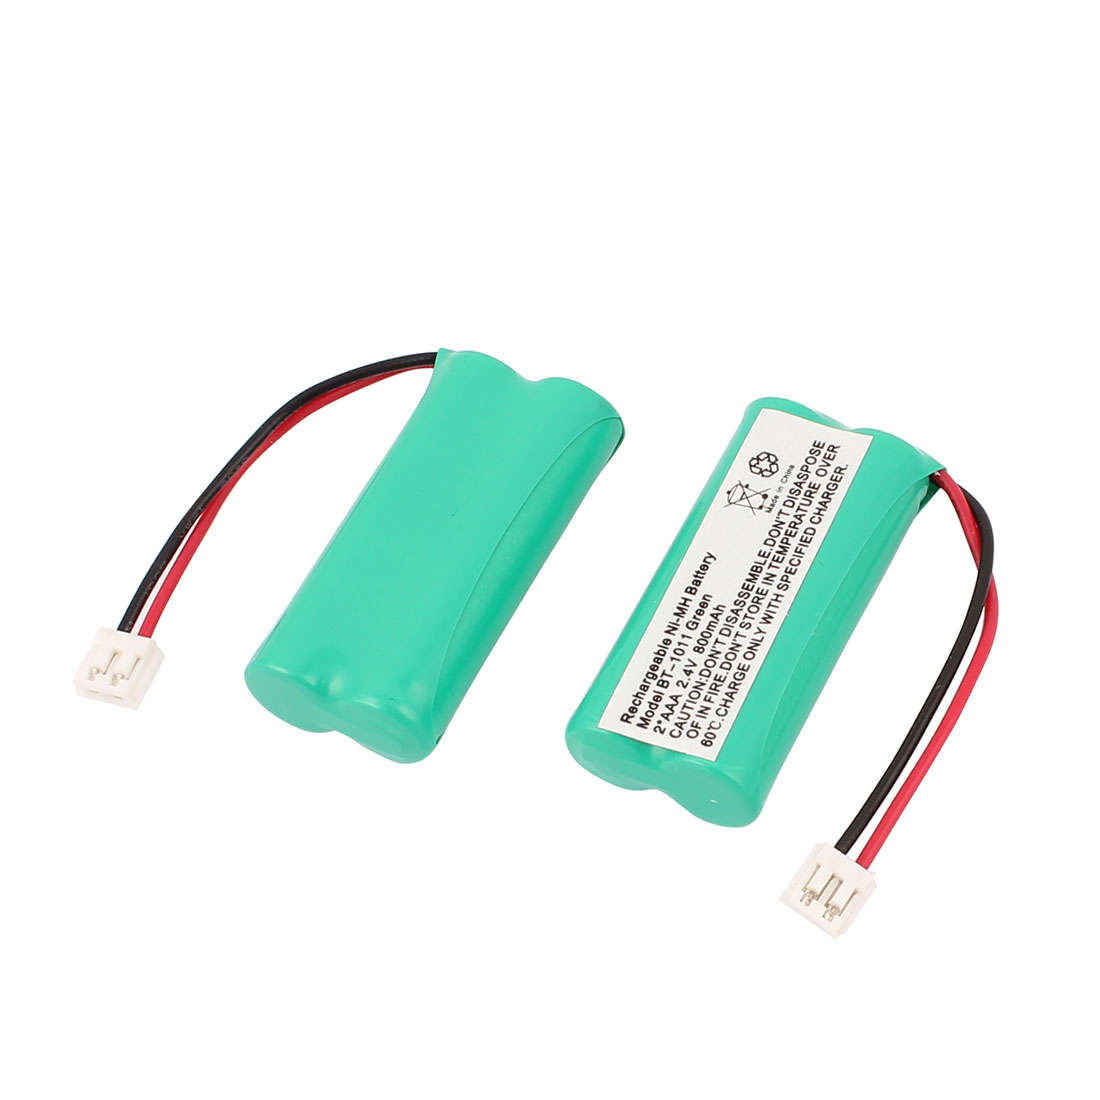 2PCS BT-1011 800mAh 2.4V Rechargeable Ni-MH Battery for Wireless Cordless Telephone